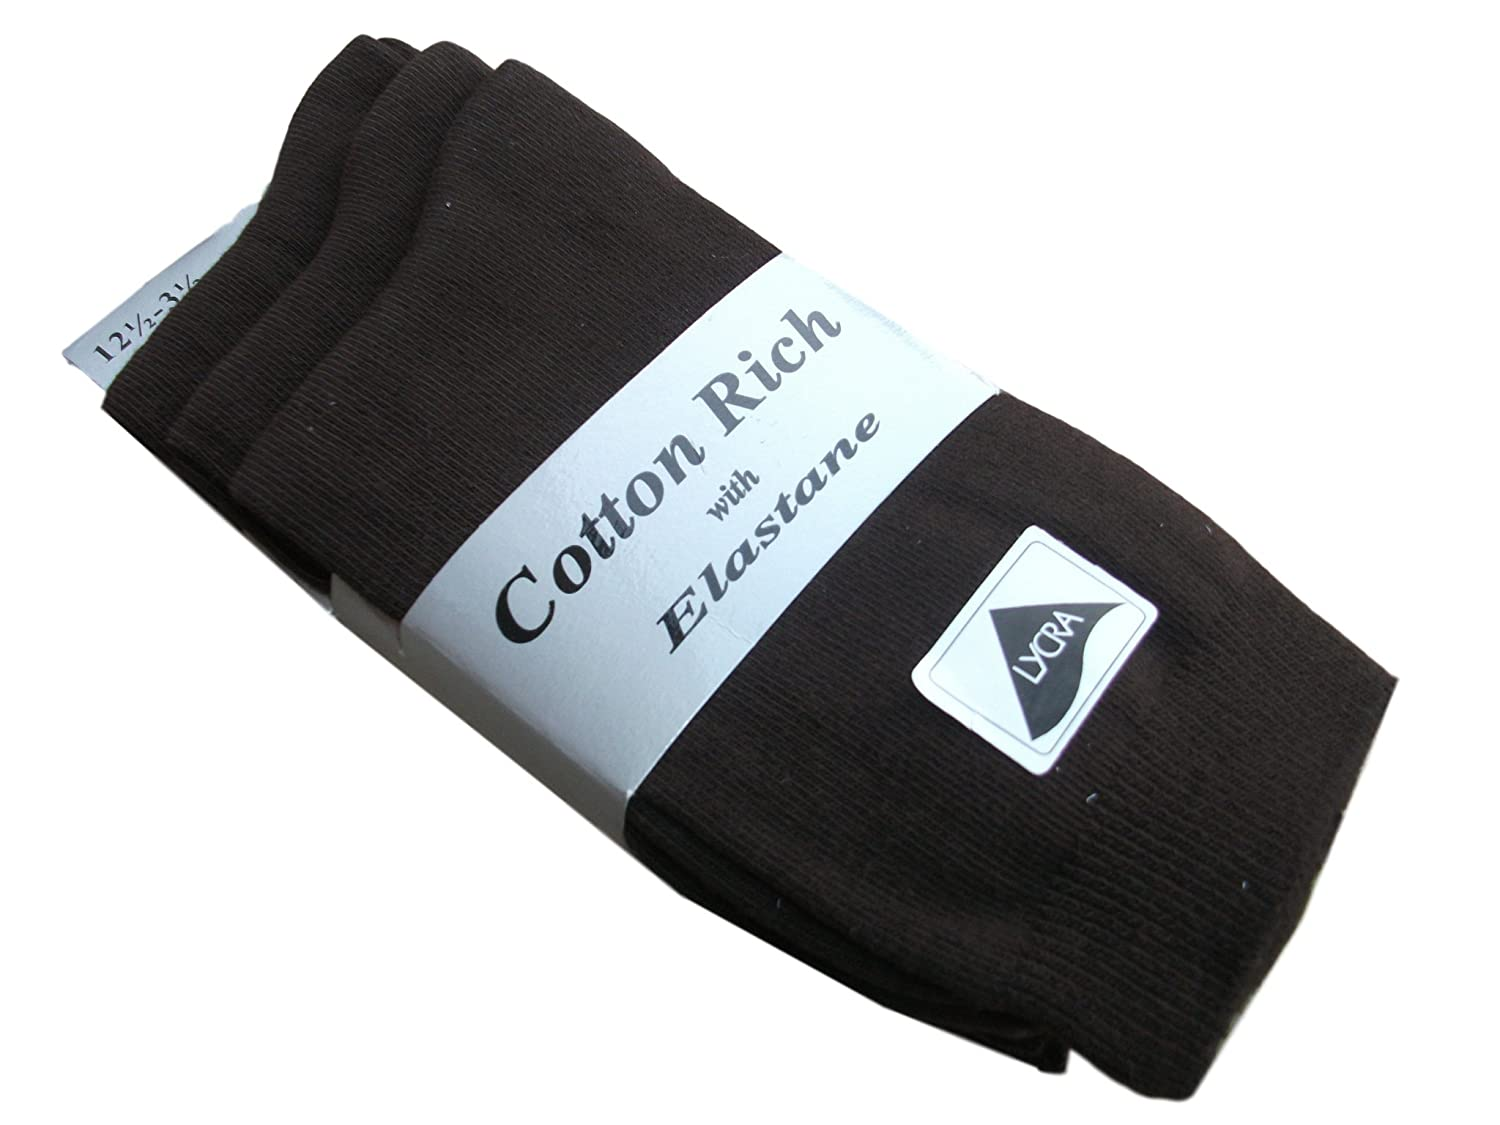 6 Pairs Girls Ankle Socks 75 Percent Cotton Shoe Size Uk 9-12 Eur 27-30 Available In 7 Colours Grey Black Burgundy Brown